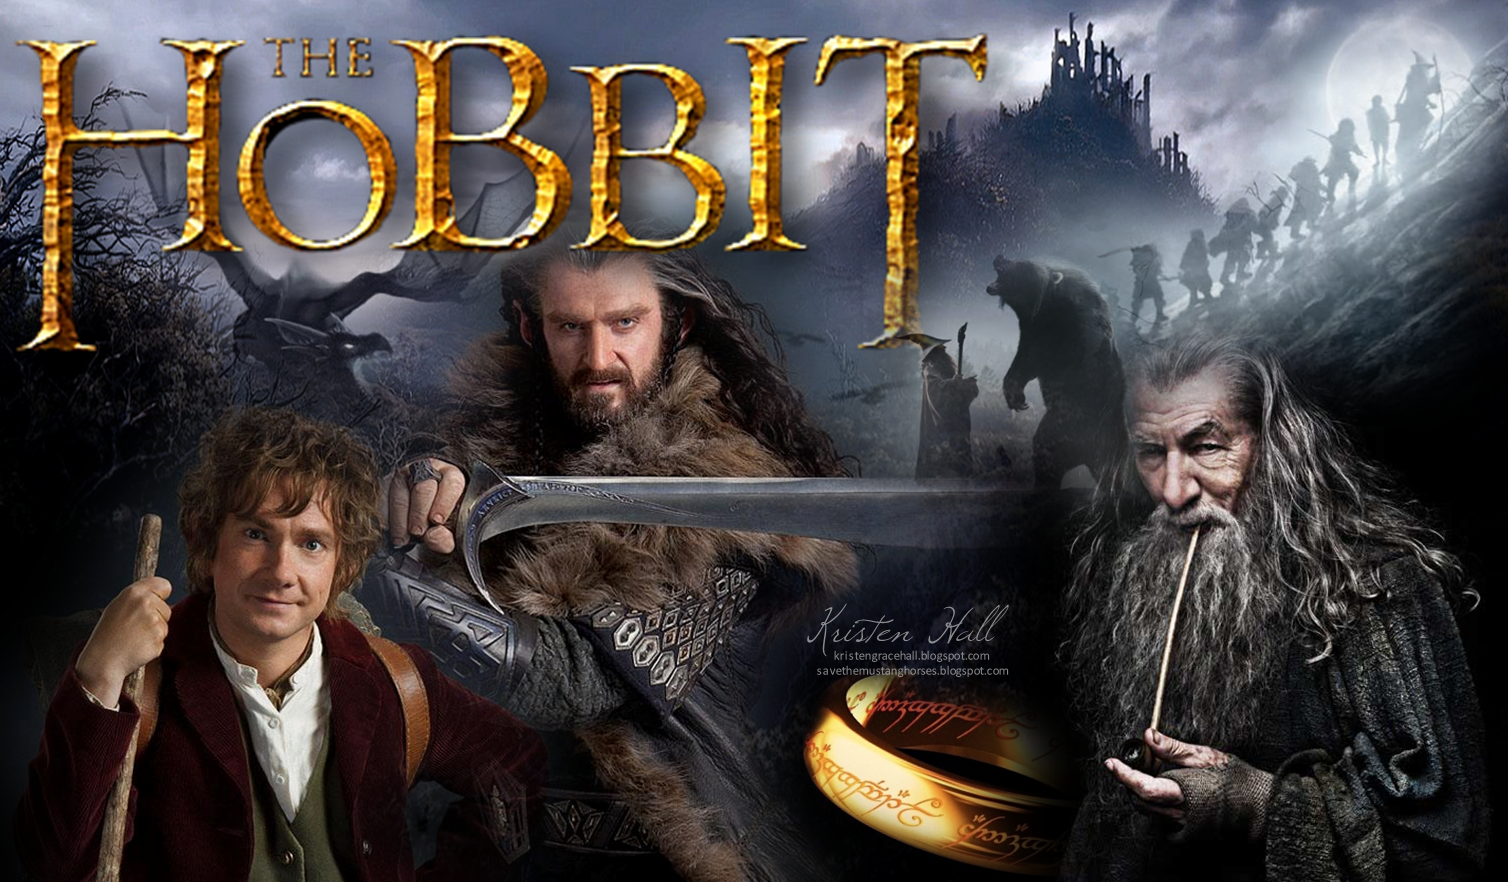 The Cynical Unicorn The Hobbit wallpaper 1508x882